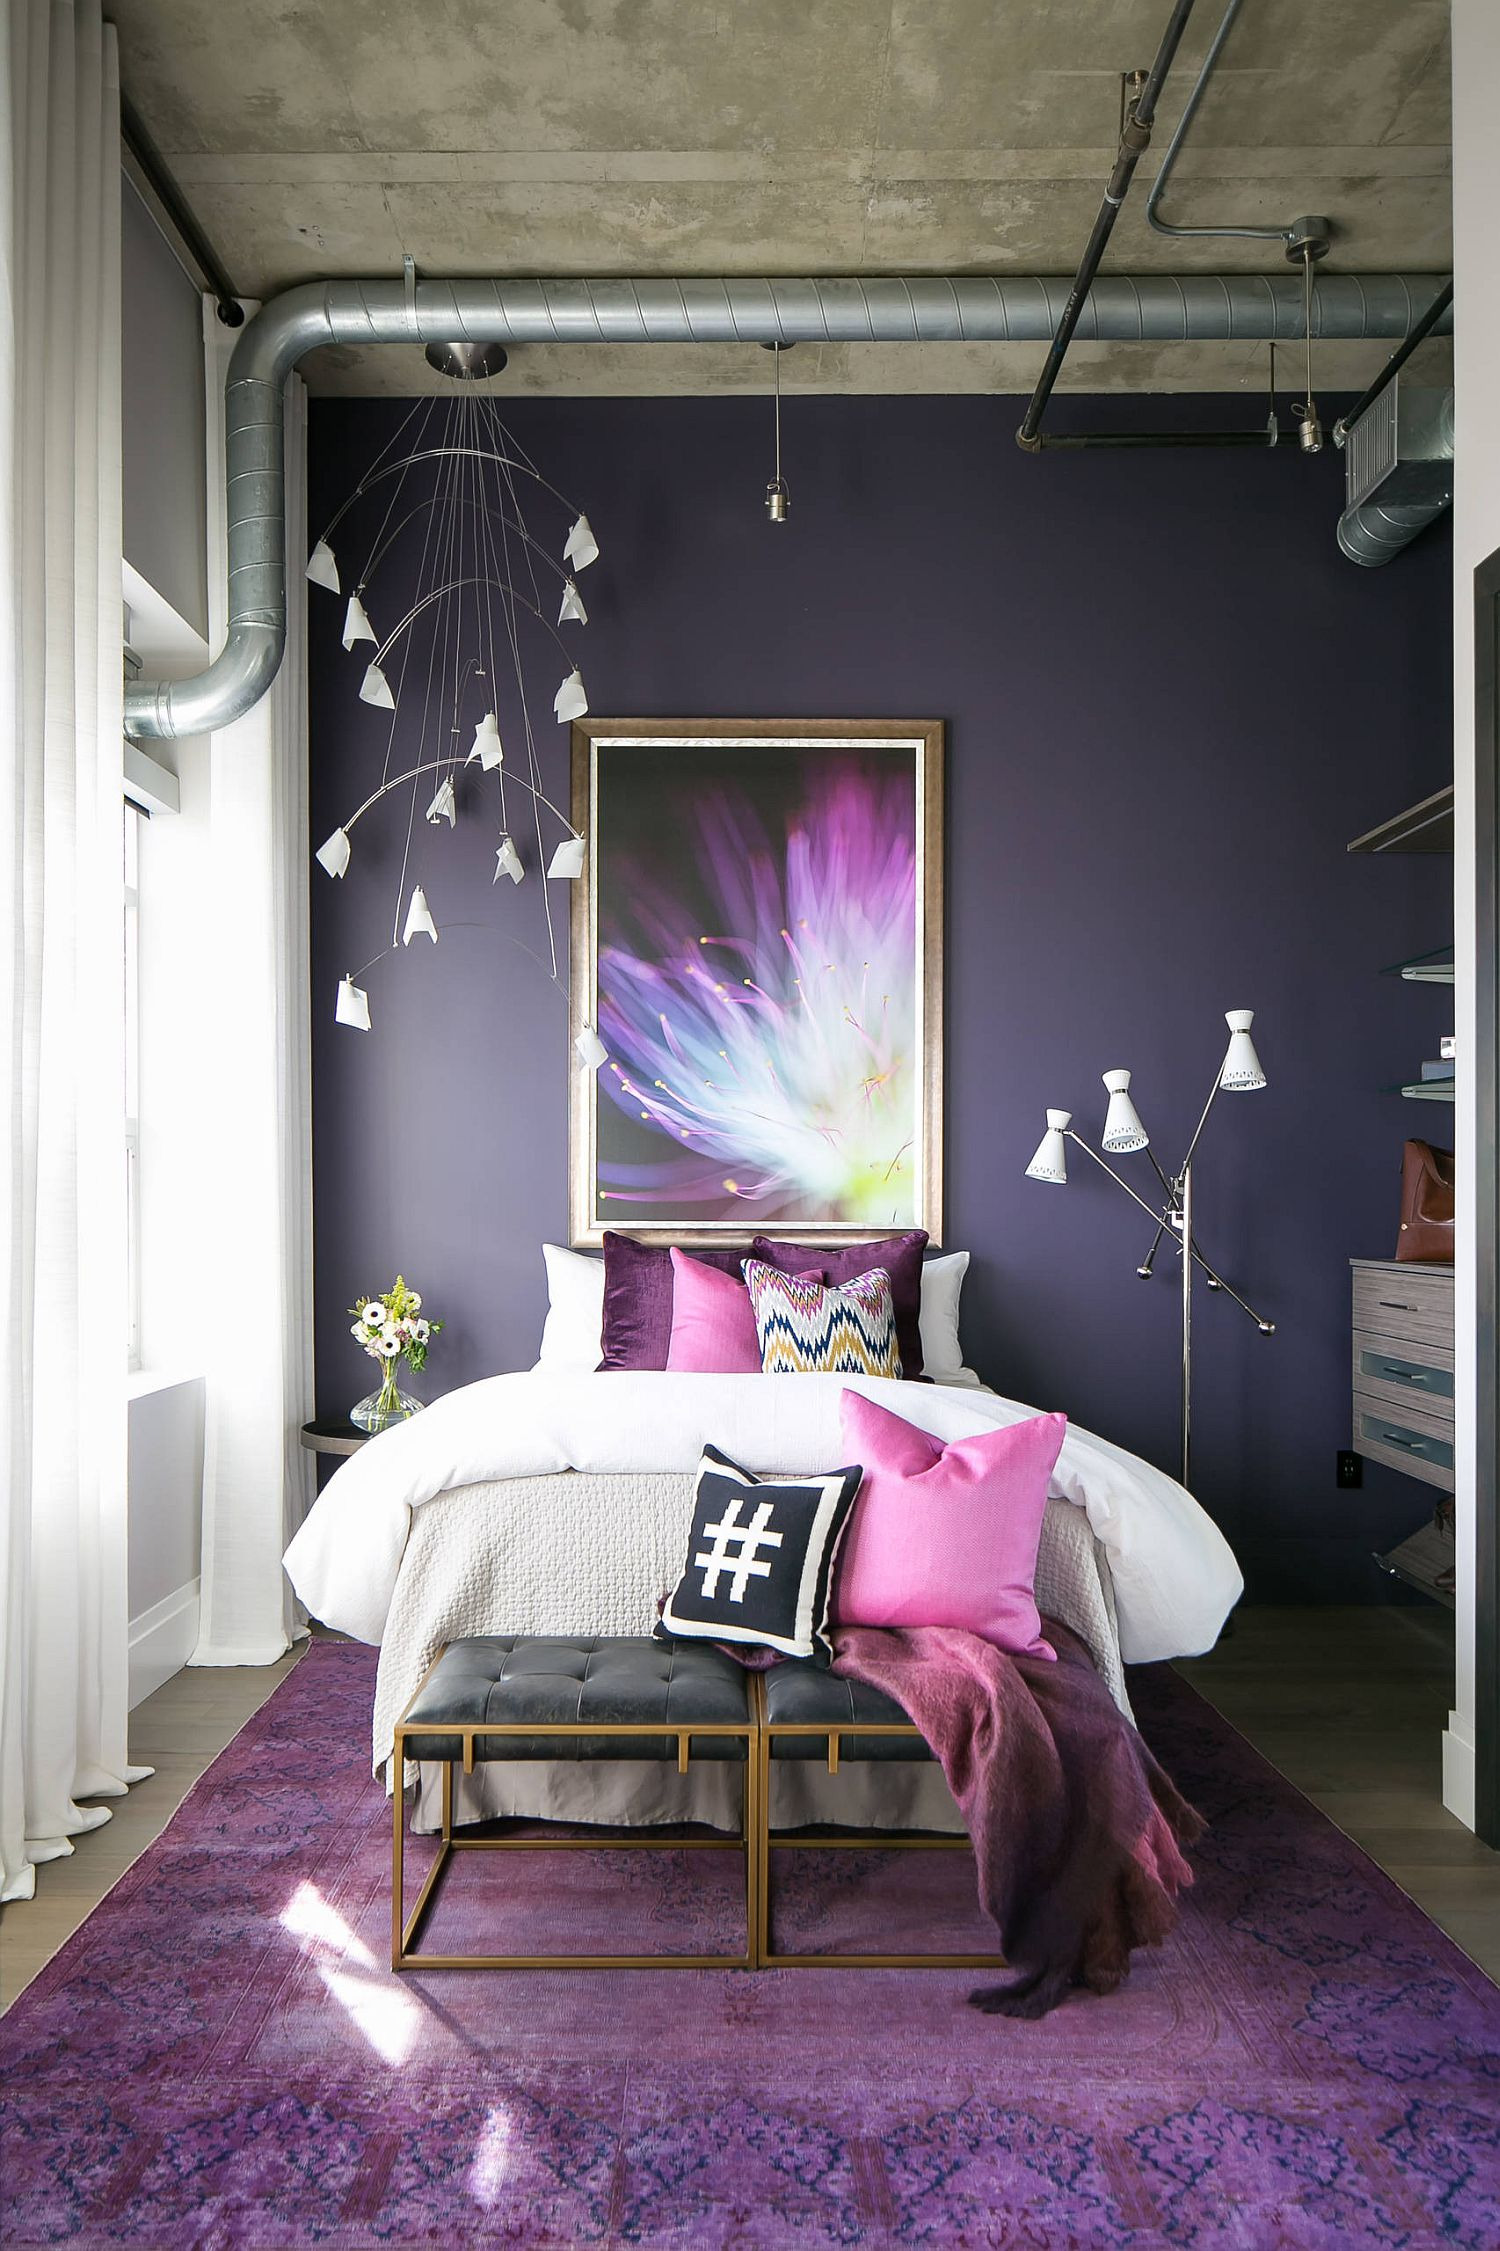 It is hard to find a more beautiful small bedroom with modern industrial style